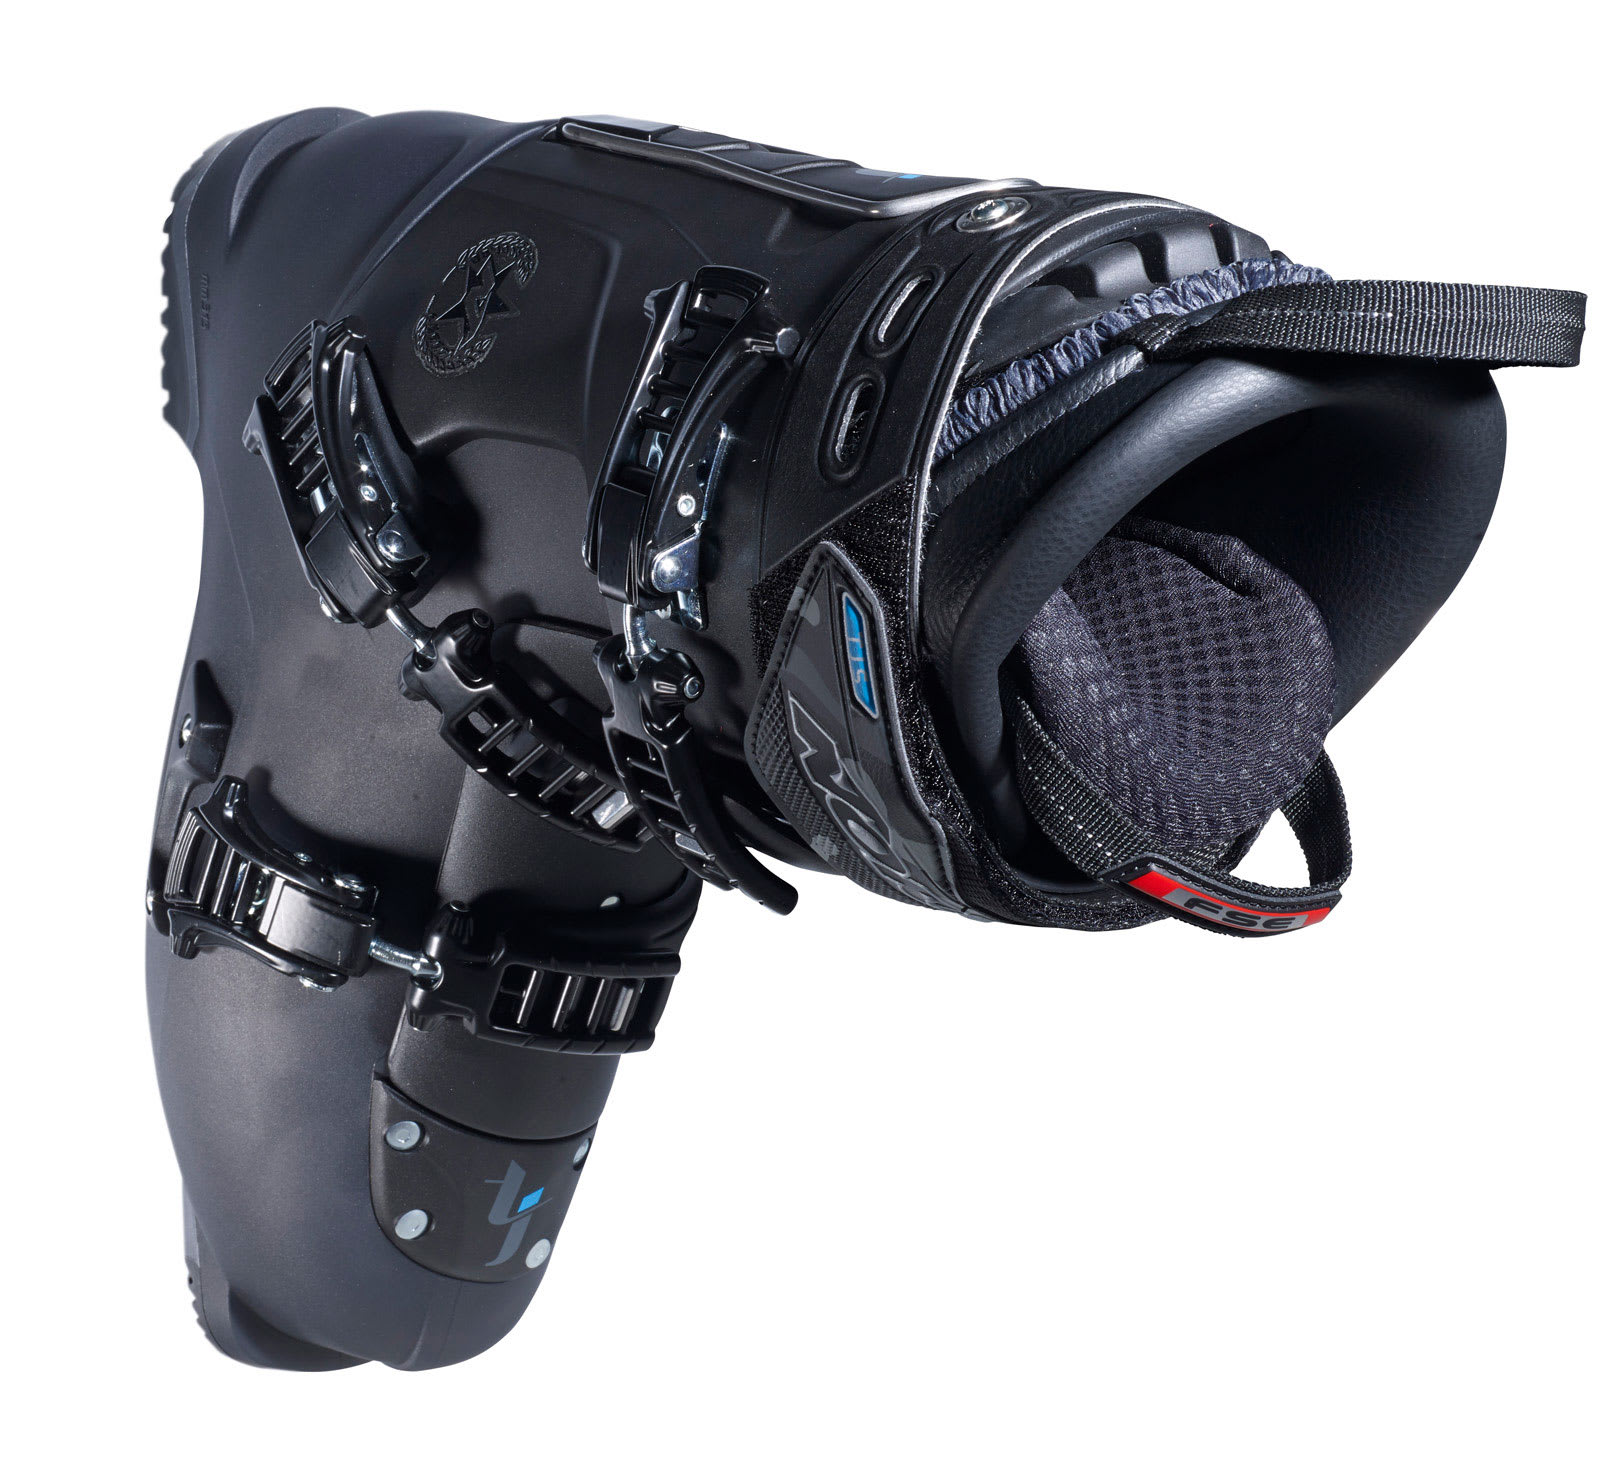 On Sale Nordica Tjs Pro Ski Boots Up To 50 Off